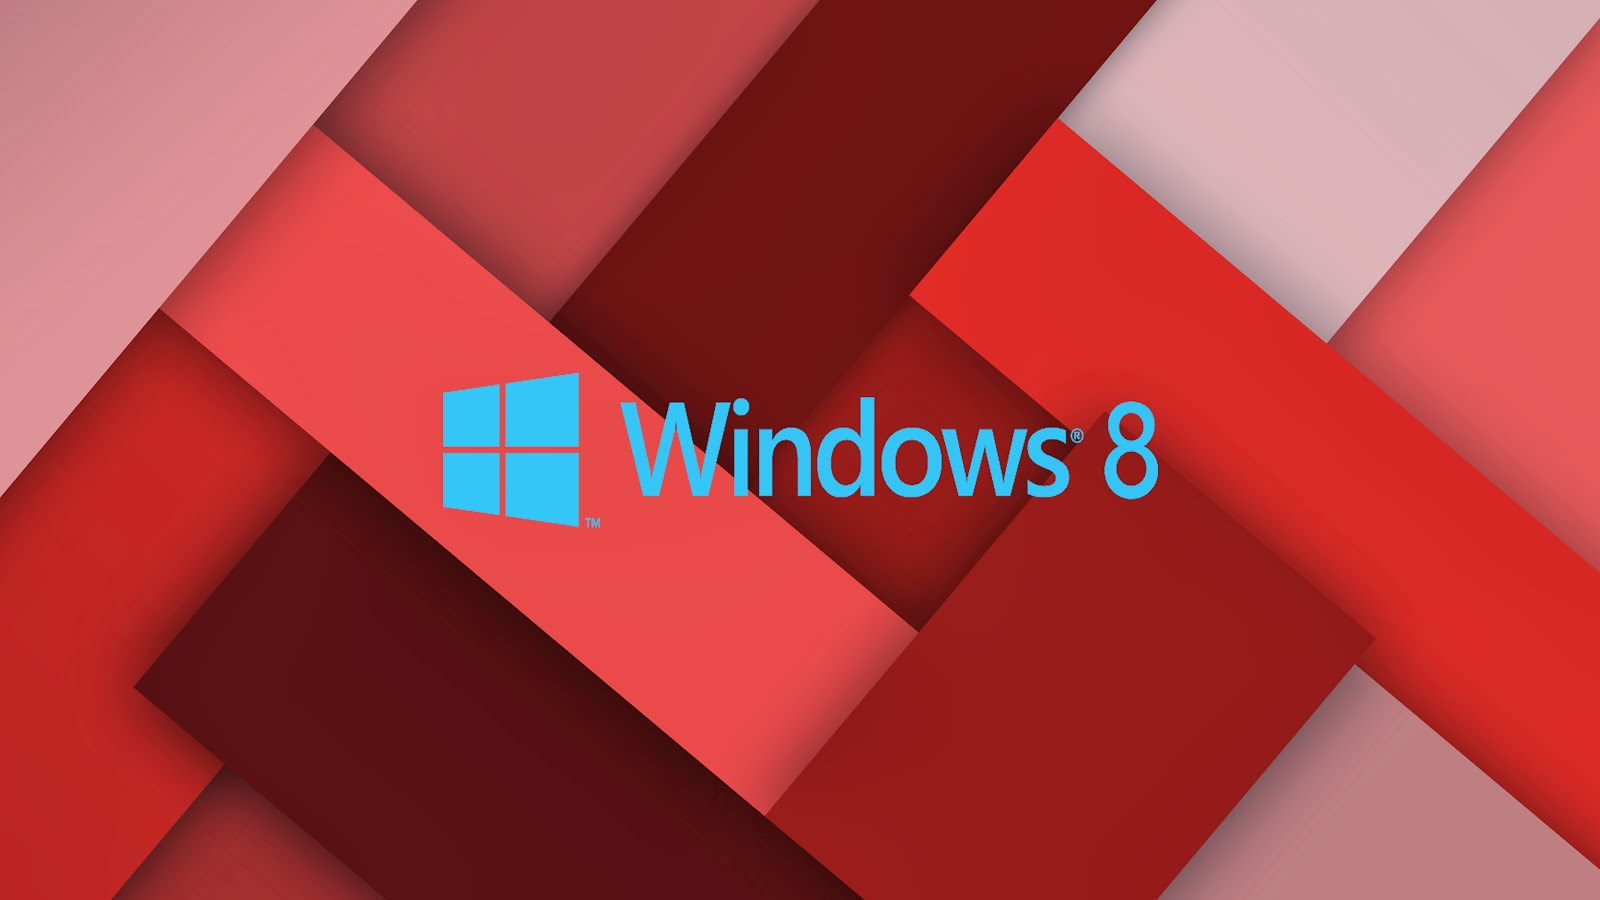 Roten Windows 8 wallpaper